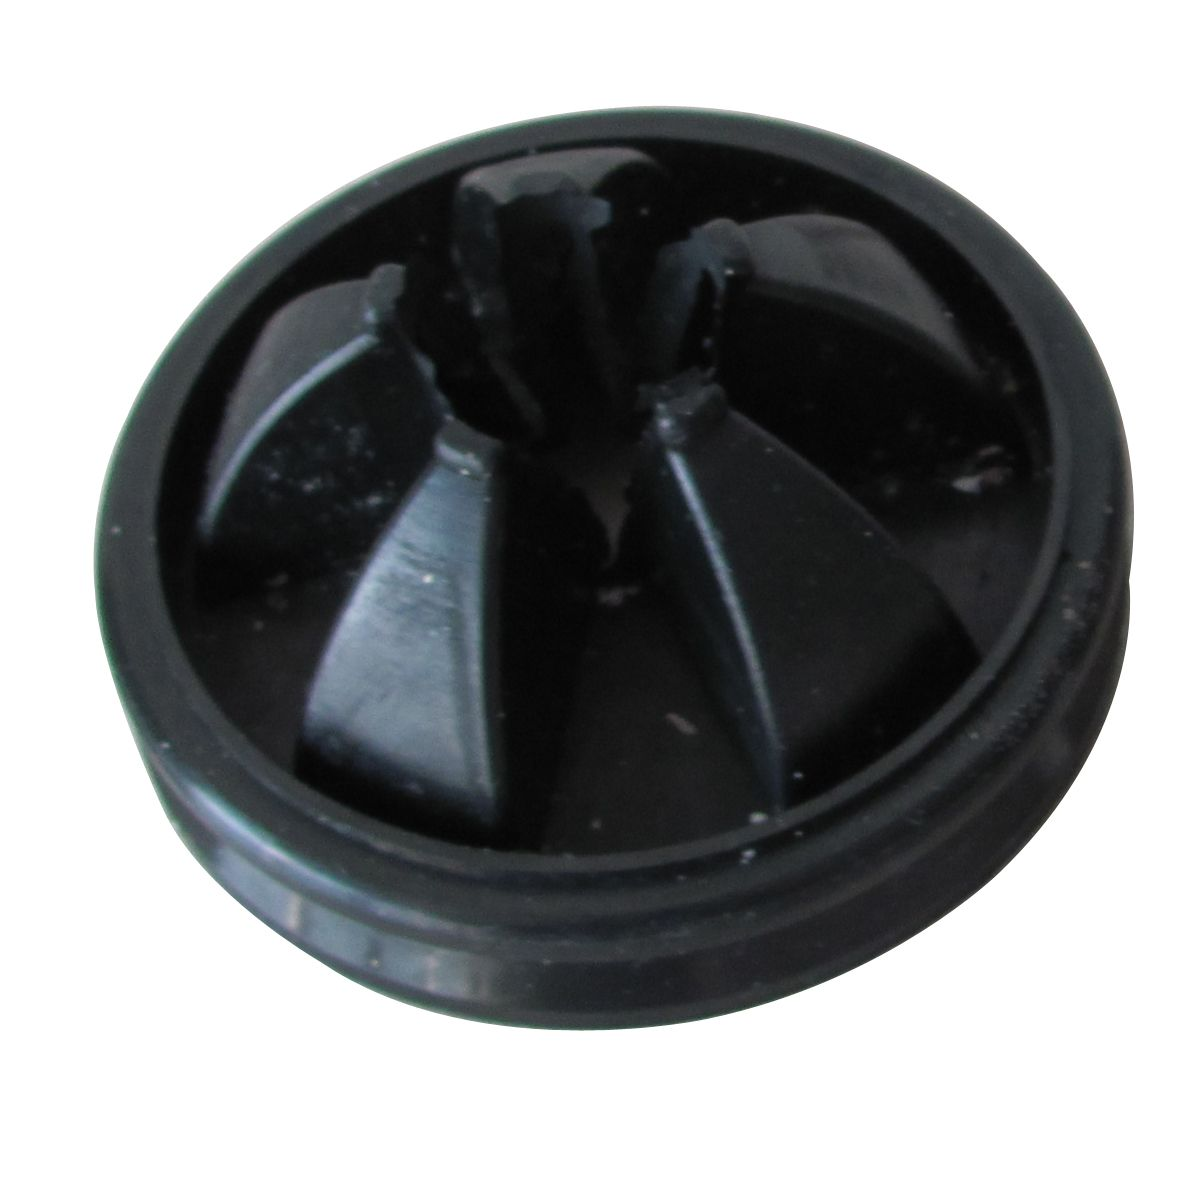 Rubber replacement splash guard for our disposers